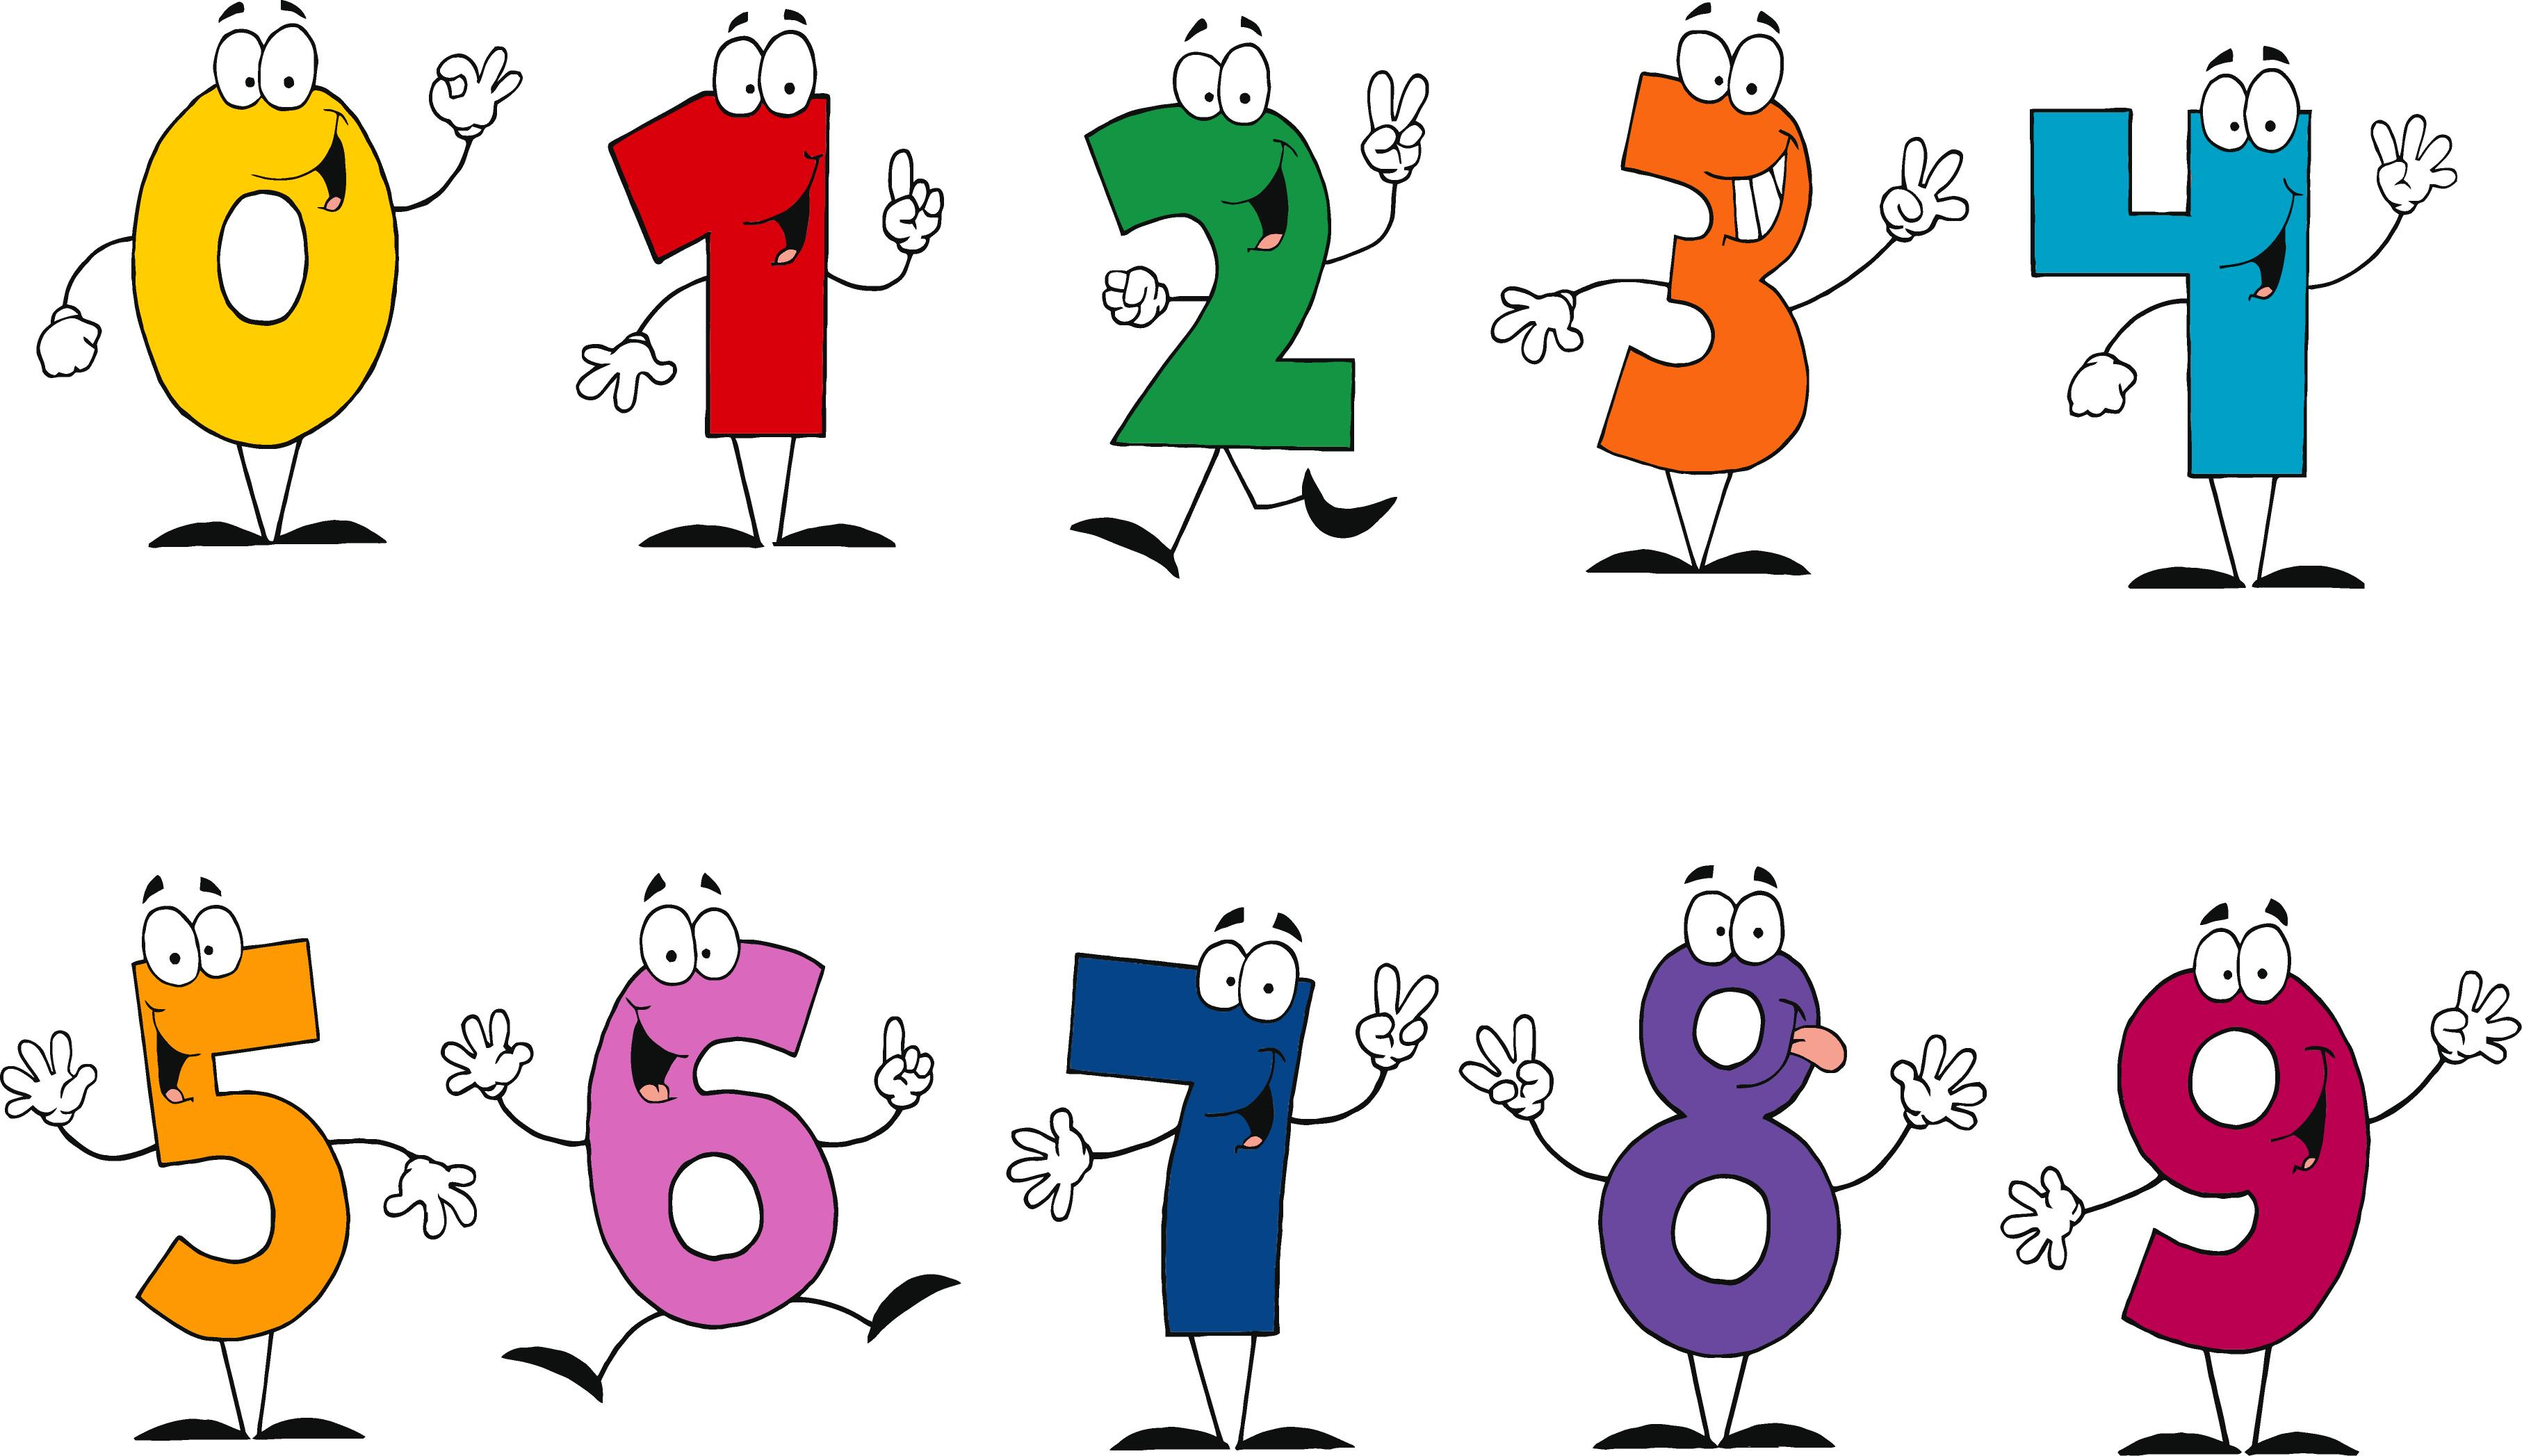 number 2 clipart at getdrawings com free for personal use number 2 rh getdrawings com number line clipart black and white blank number line clipart